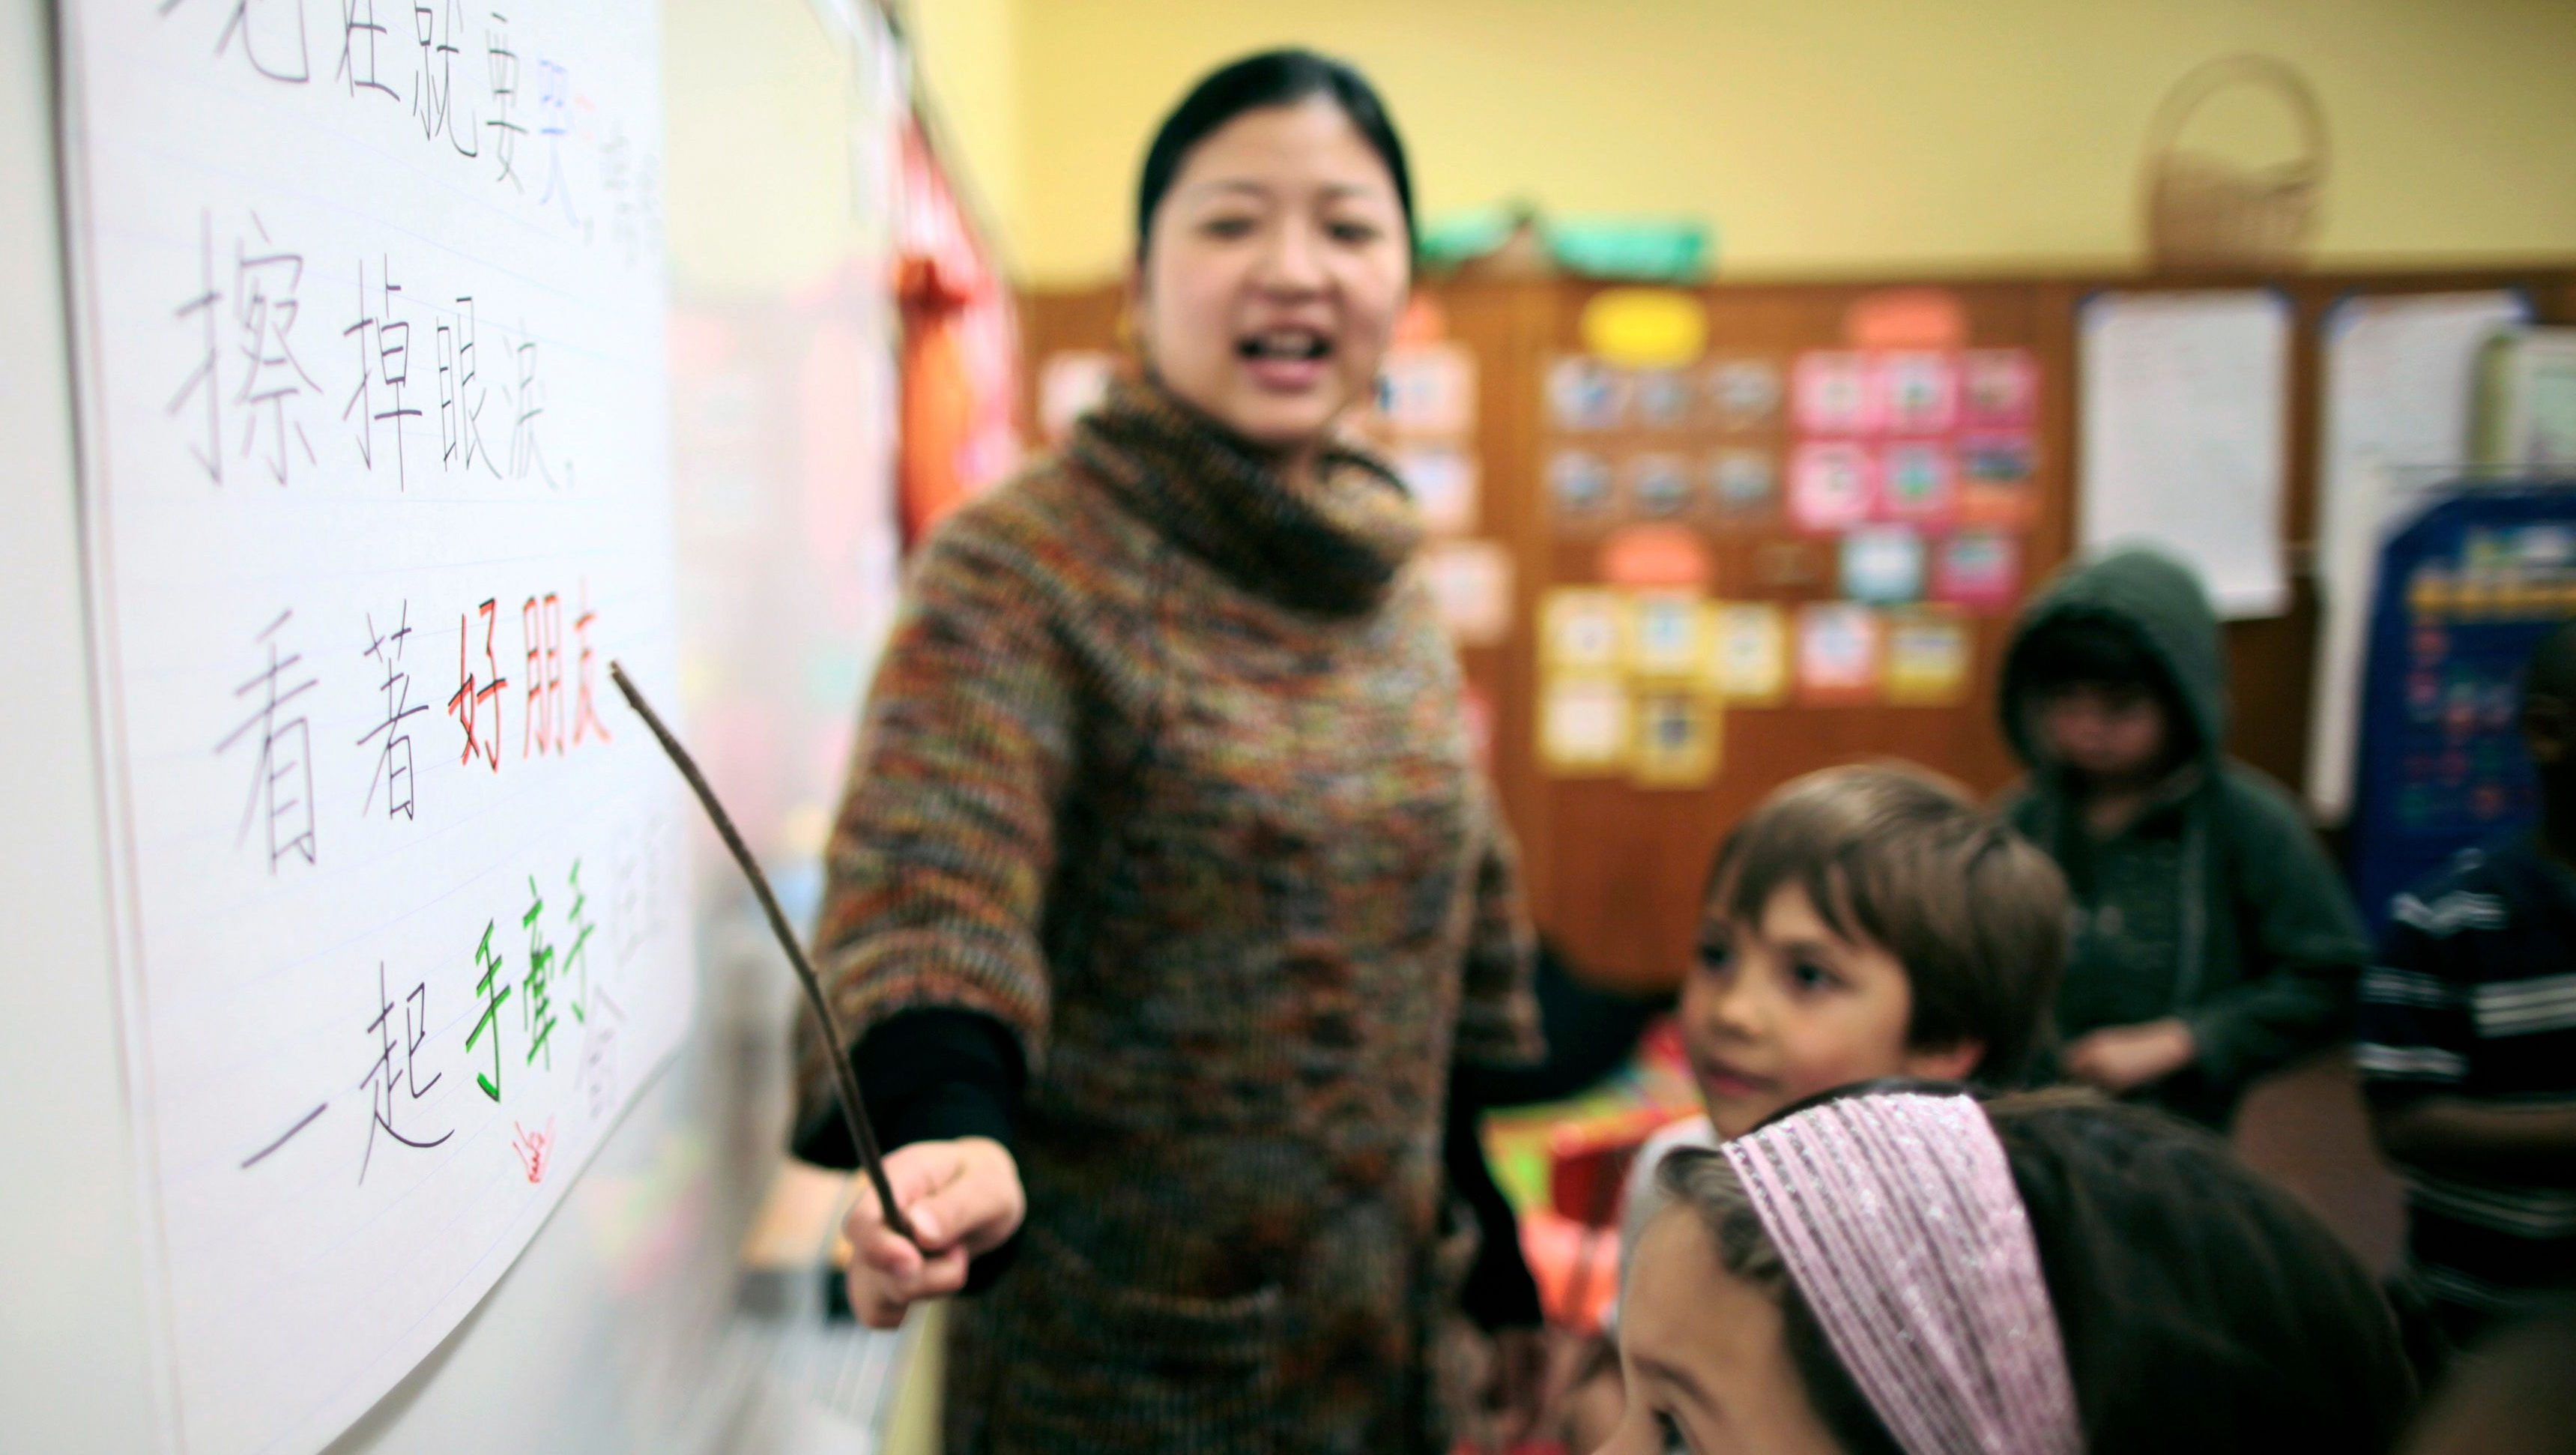 Teacher Kennis Wong (L) points to Chinese characters on the board at Broadway Elementary School in Venice, Los Angeles, California, April 11, 2011. The school launched one of only two English-Mandarin Chinese dual-language immersion programs in the Los Angeles Unified School District in September 2010.